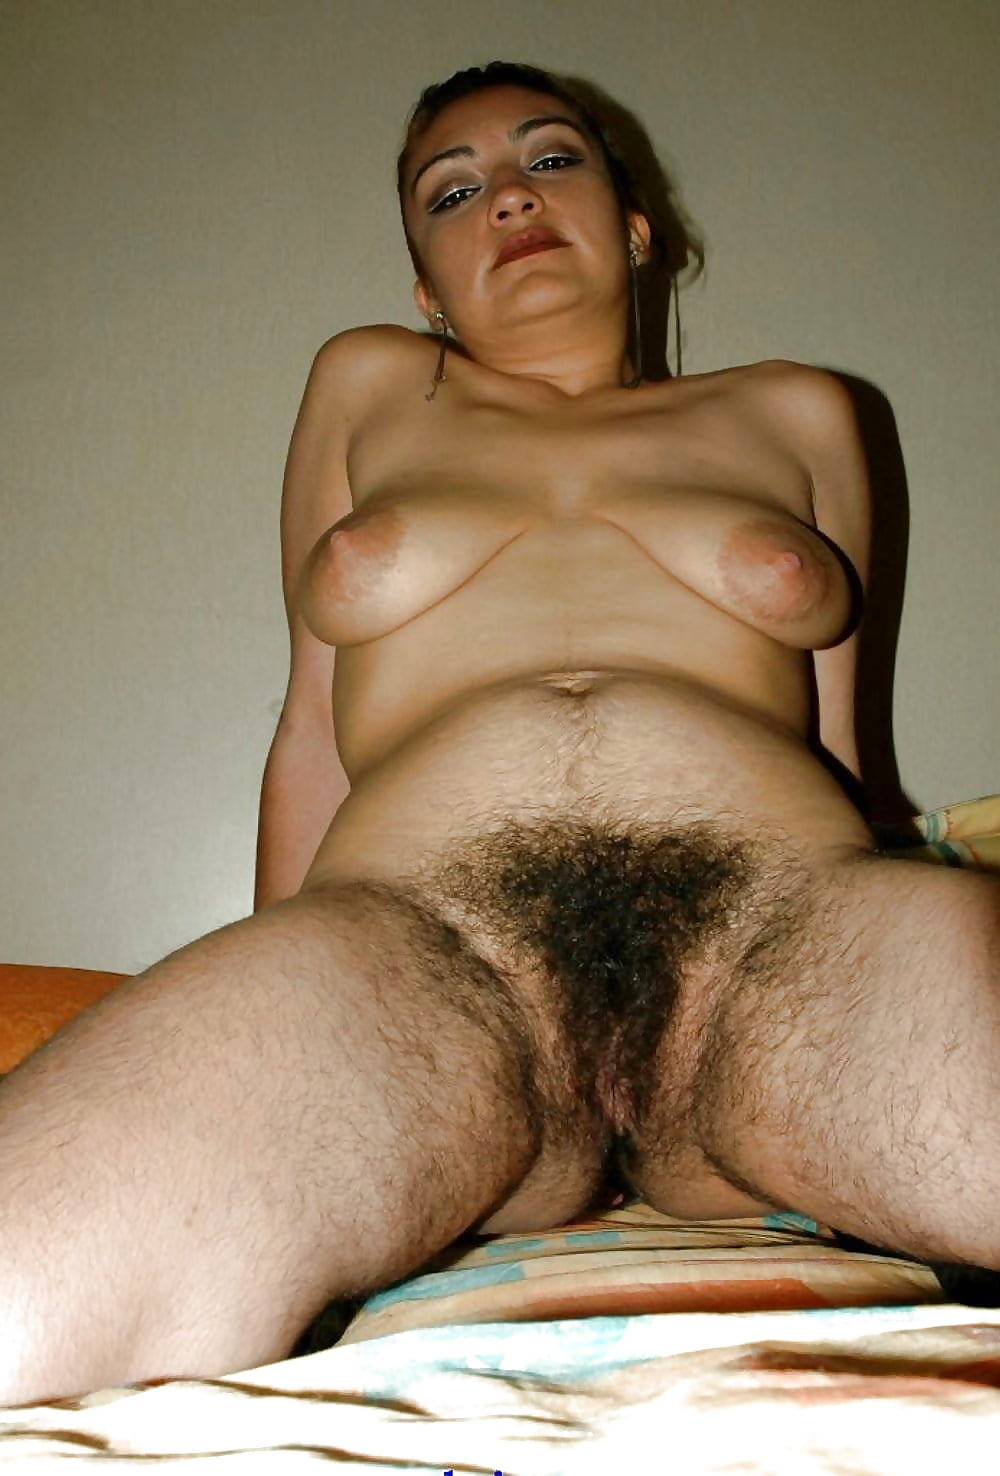 helper-hairy-mature-mexican-pussy-photos-nudist-pic-beautiful